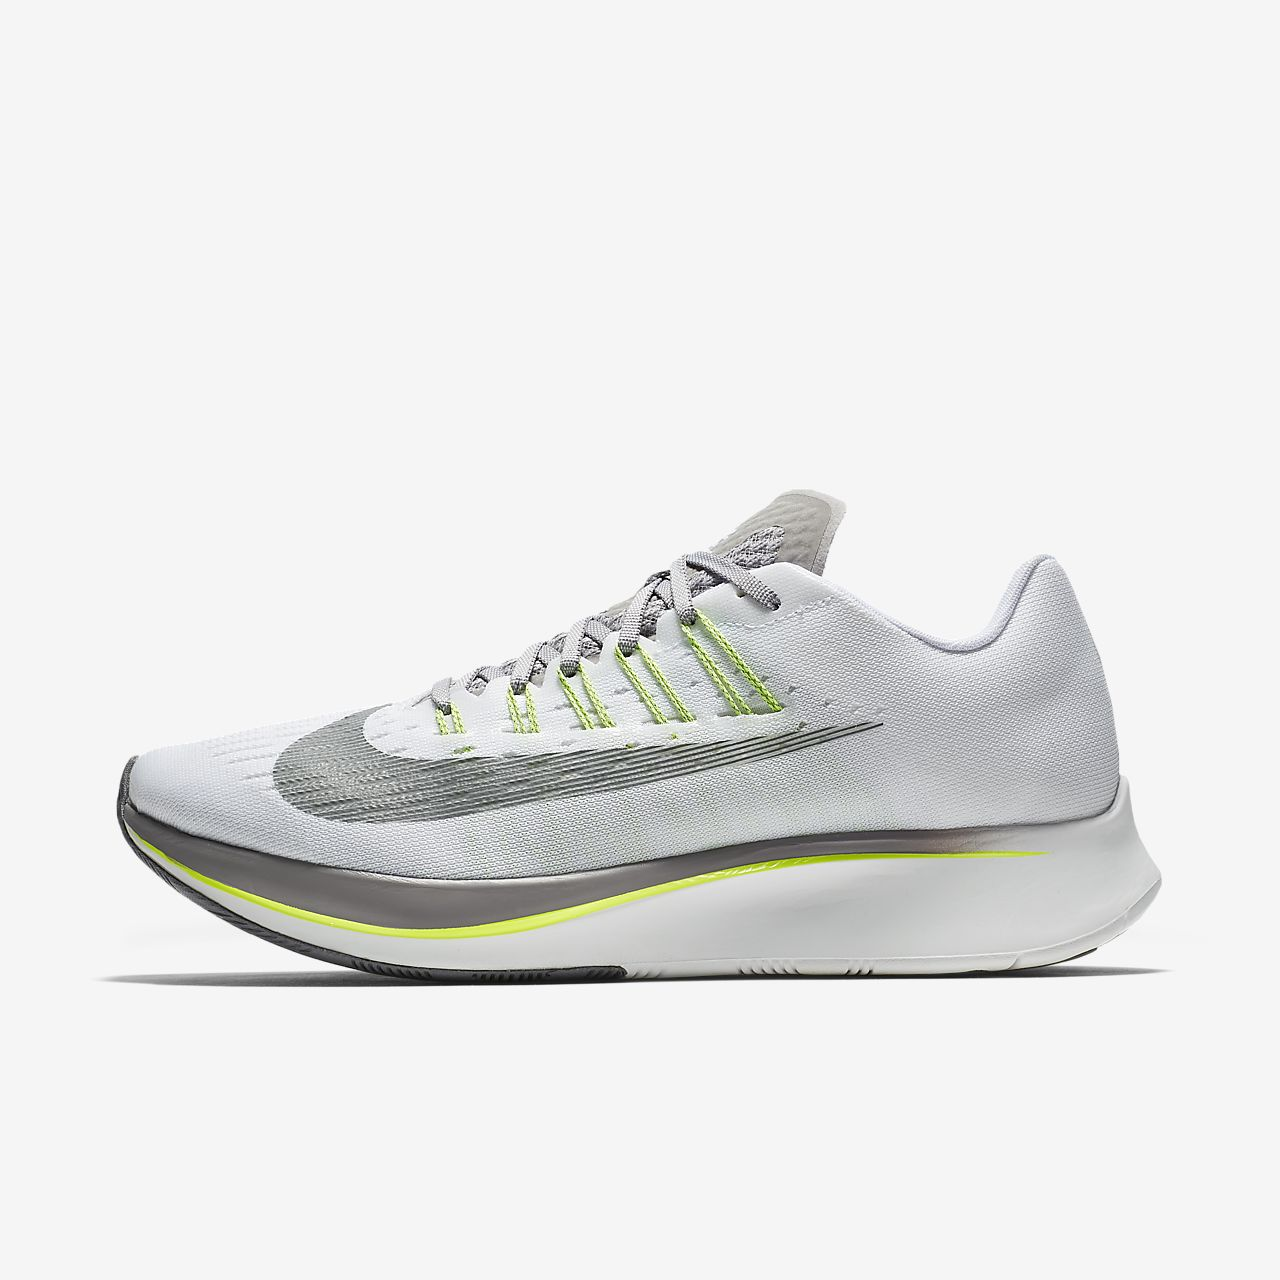 81c920138318 Nike Zoom Fly Men s Running Shoe. Nike.com